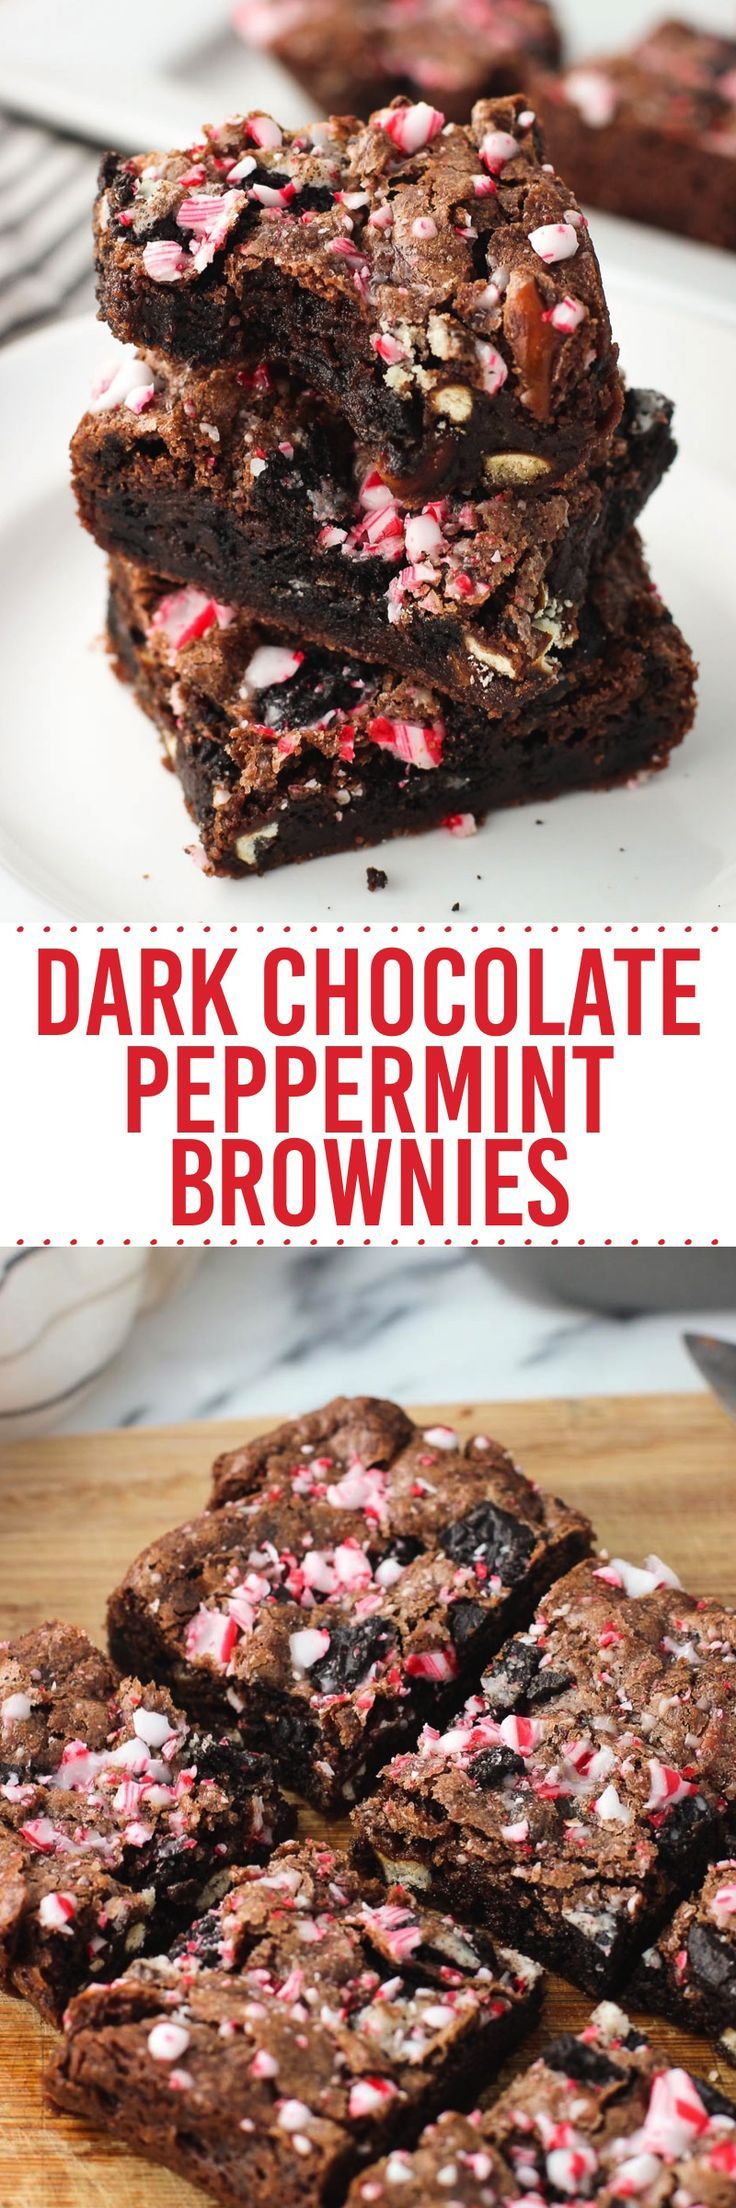 Dark Chocolate Peppermint Brownies Loaded With Oreo Pieces